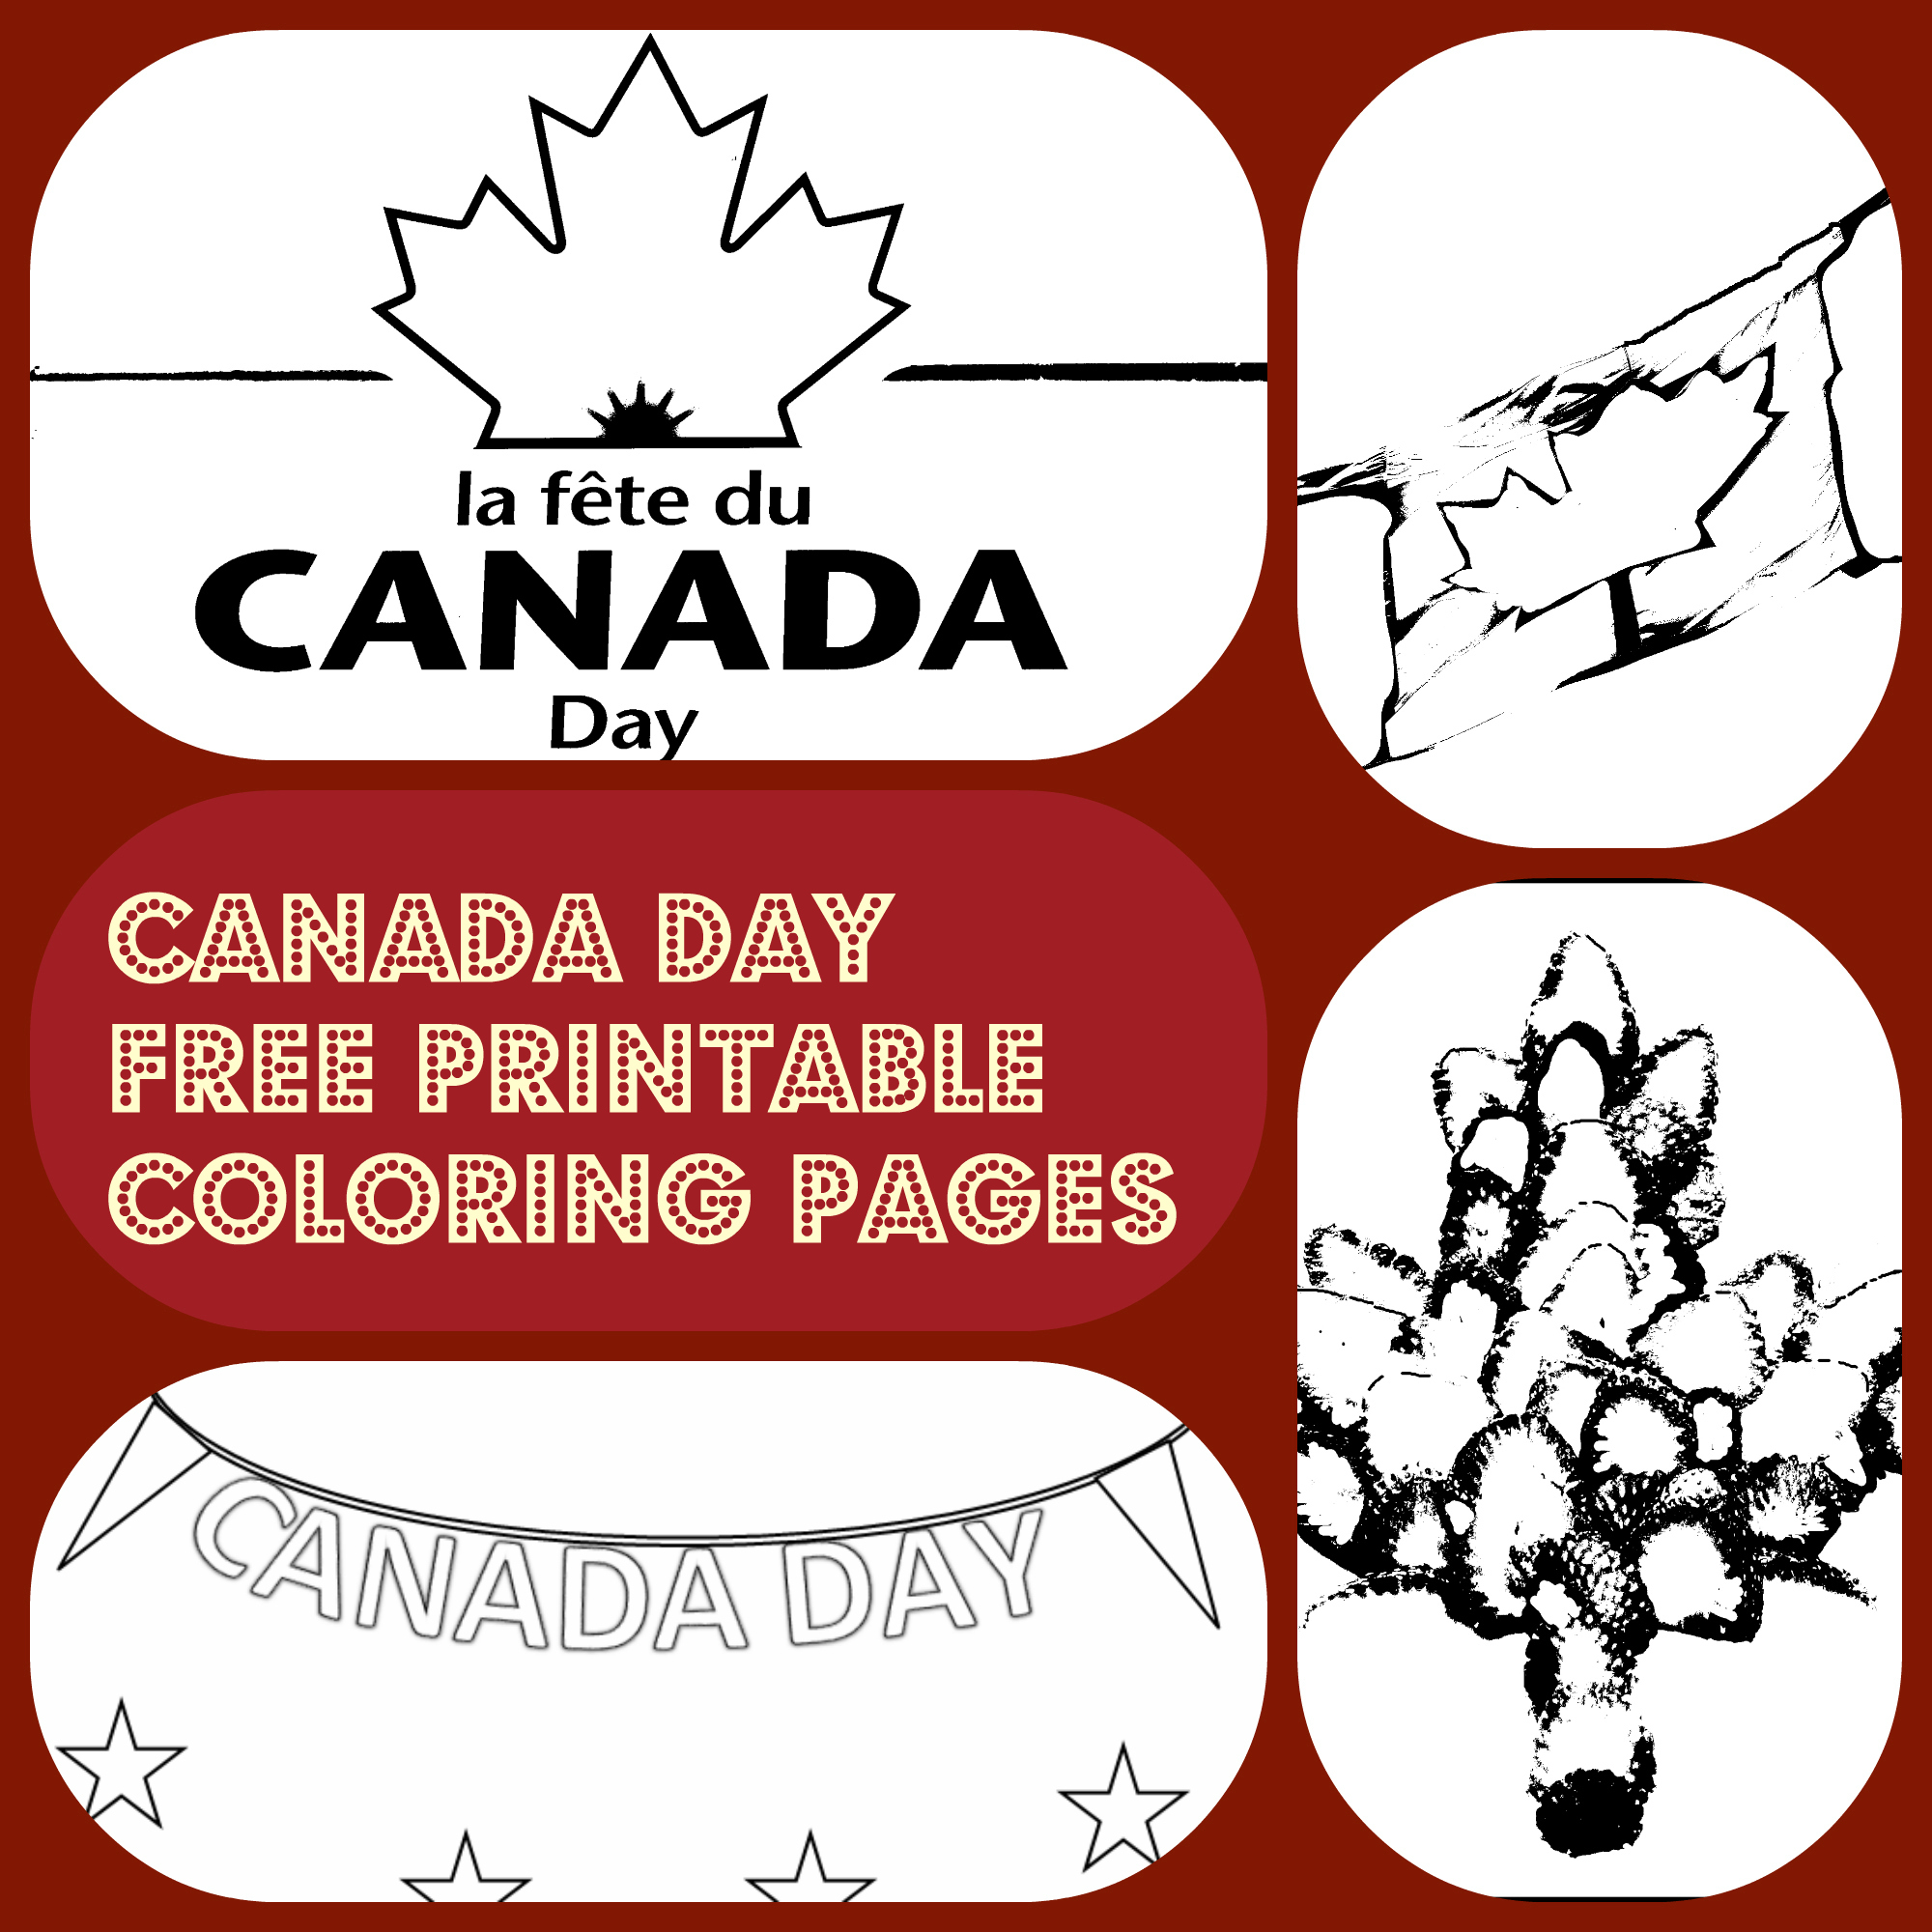 4 Canada Day free printable coloring pages - Kiddie Foodies